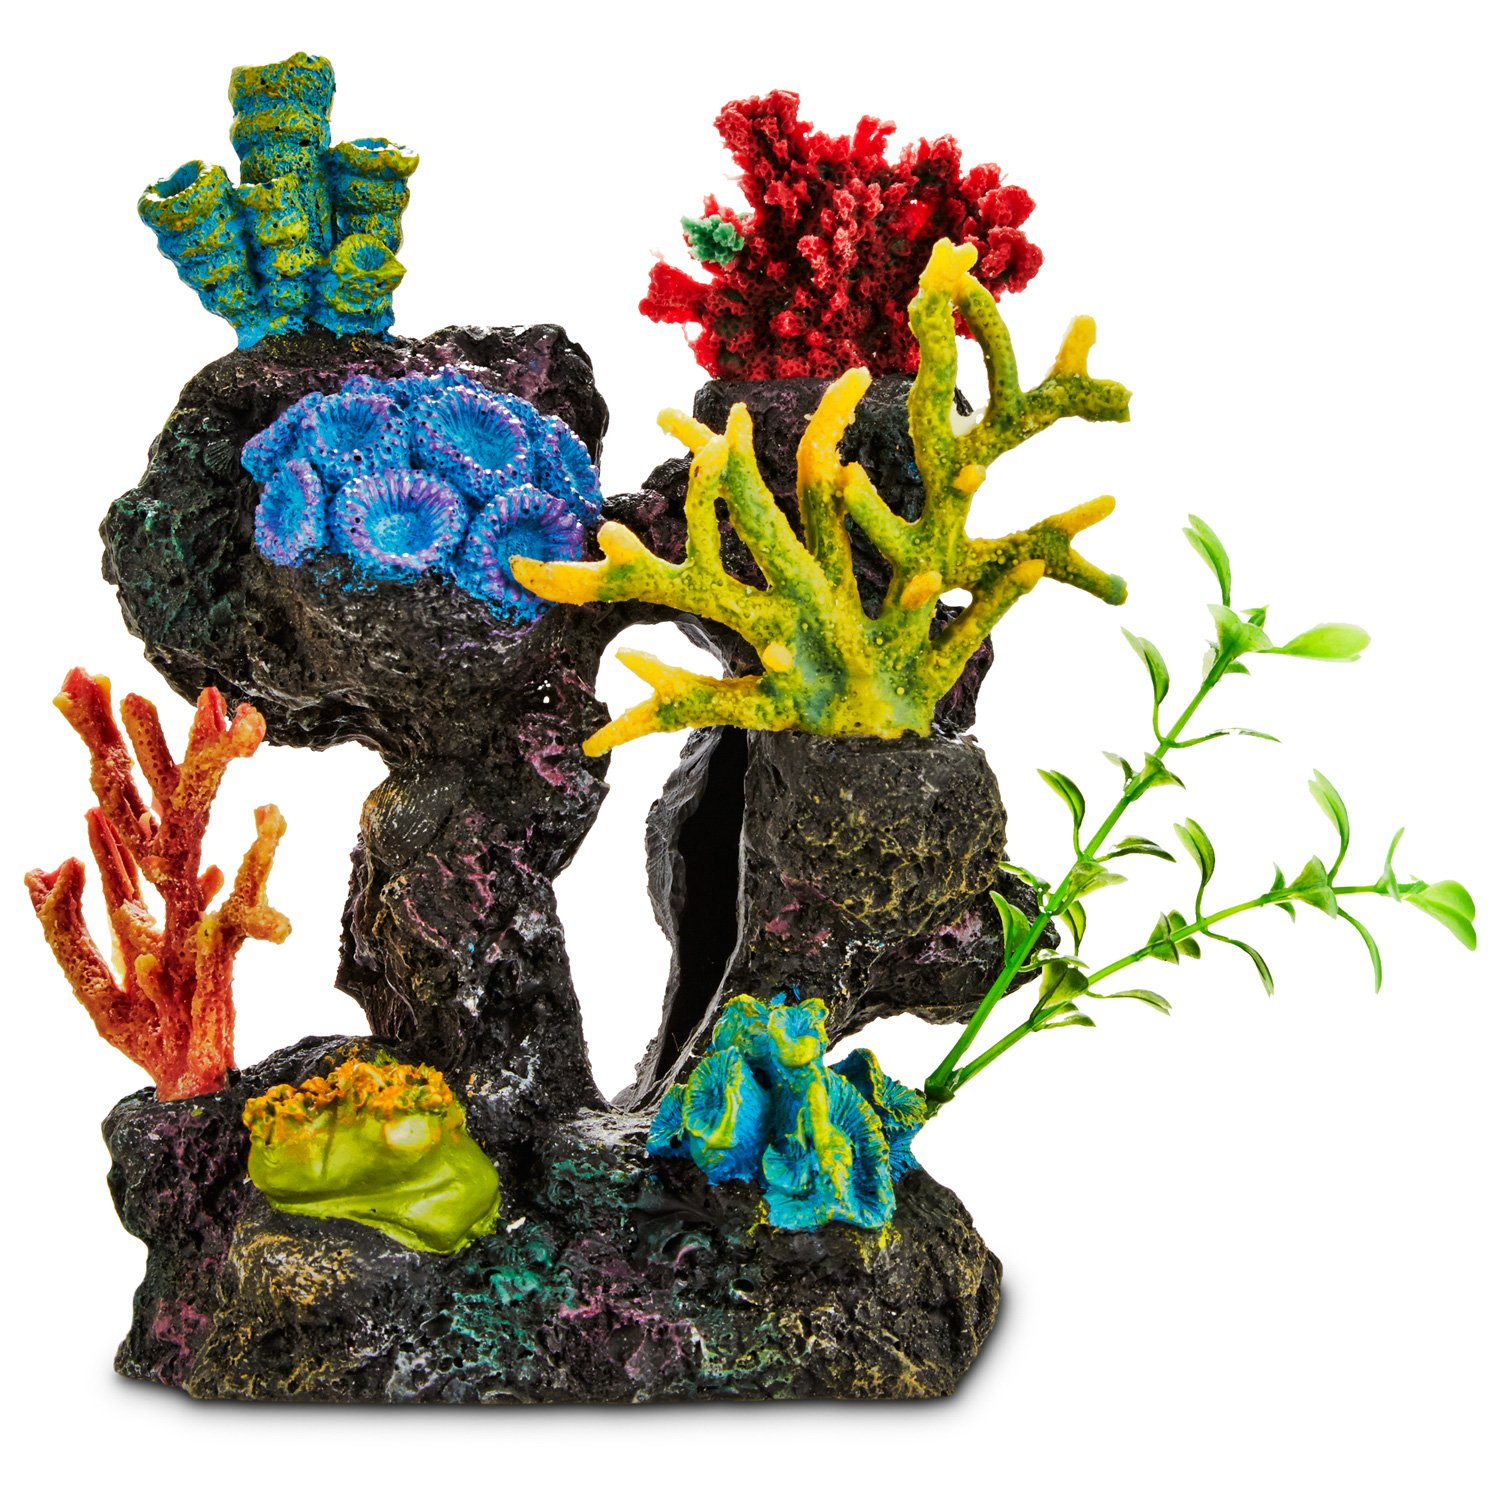 Imagitarium coral reef with silk plants aquarium ornament for Artificial coral reef aquarium decoration uk